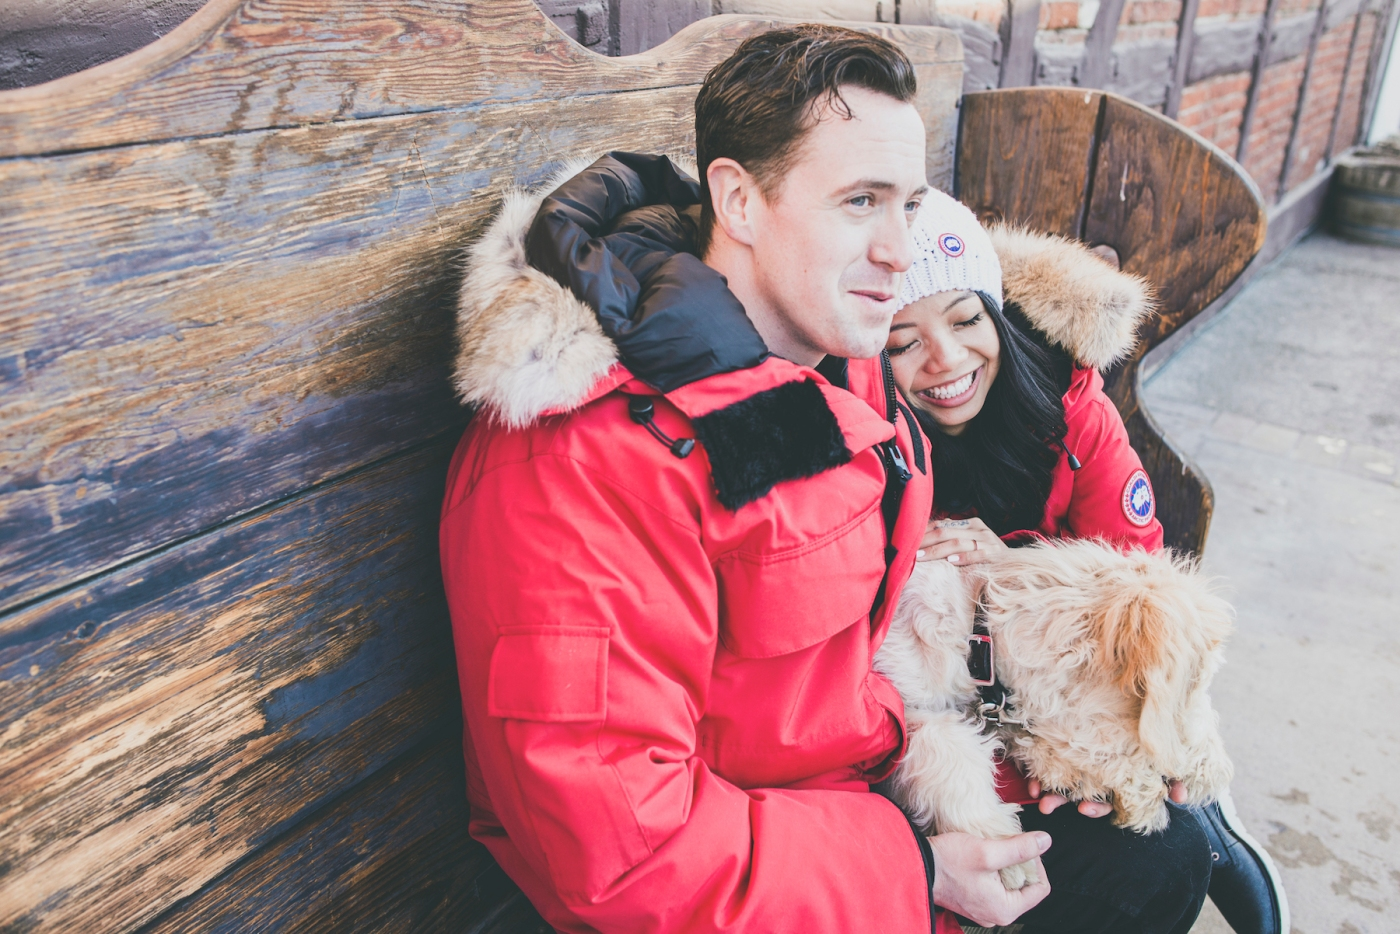 leavenworth_elopement_by_jane_speleers_photography_seattle_photographer_2017_winter_snow_joy_and_jason_rendezvous_ranch_cashmere_leavenworth_nahahum_canyon_all_rights_reserveddsc_9439